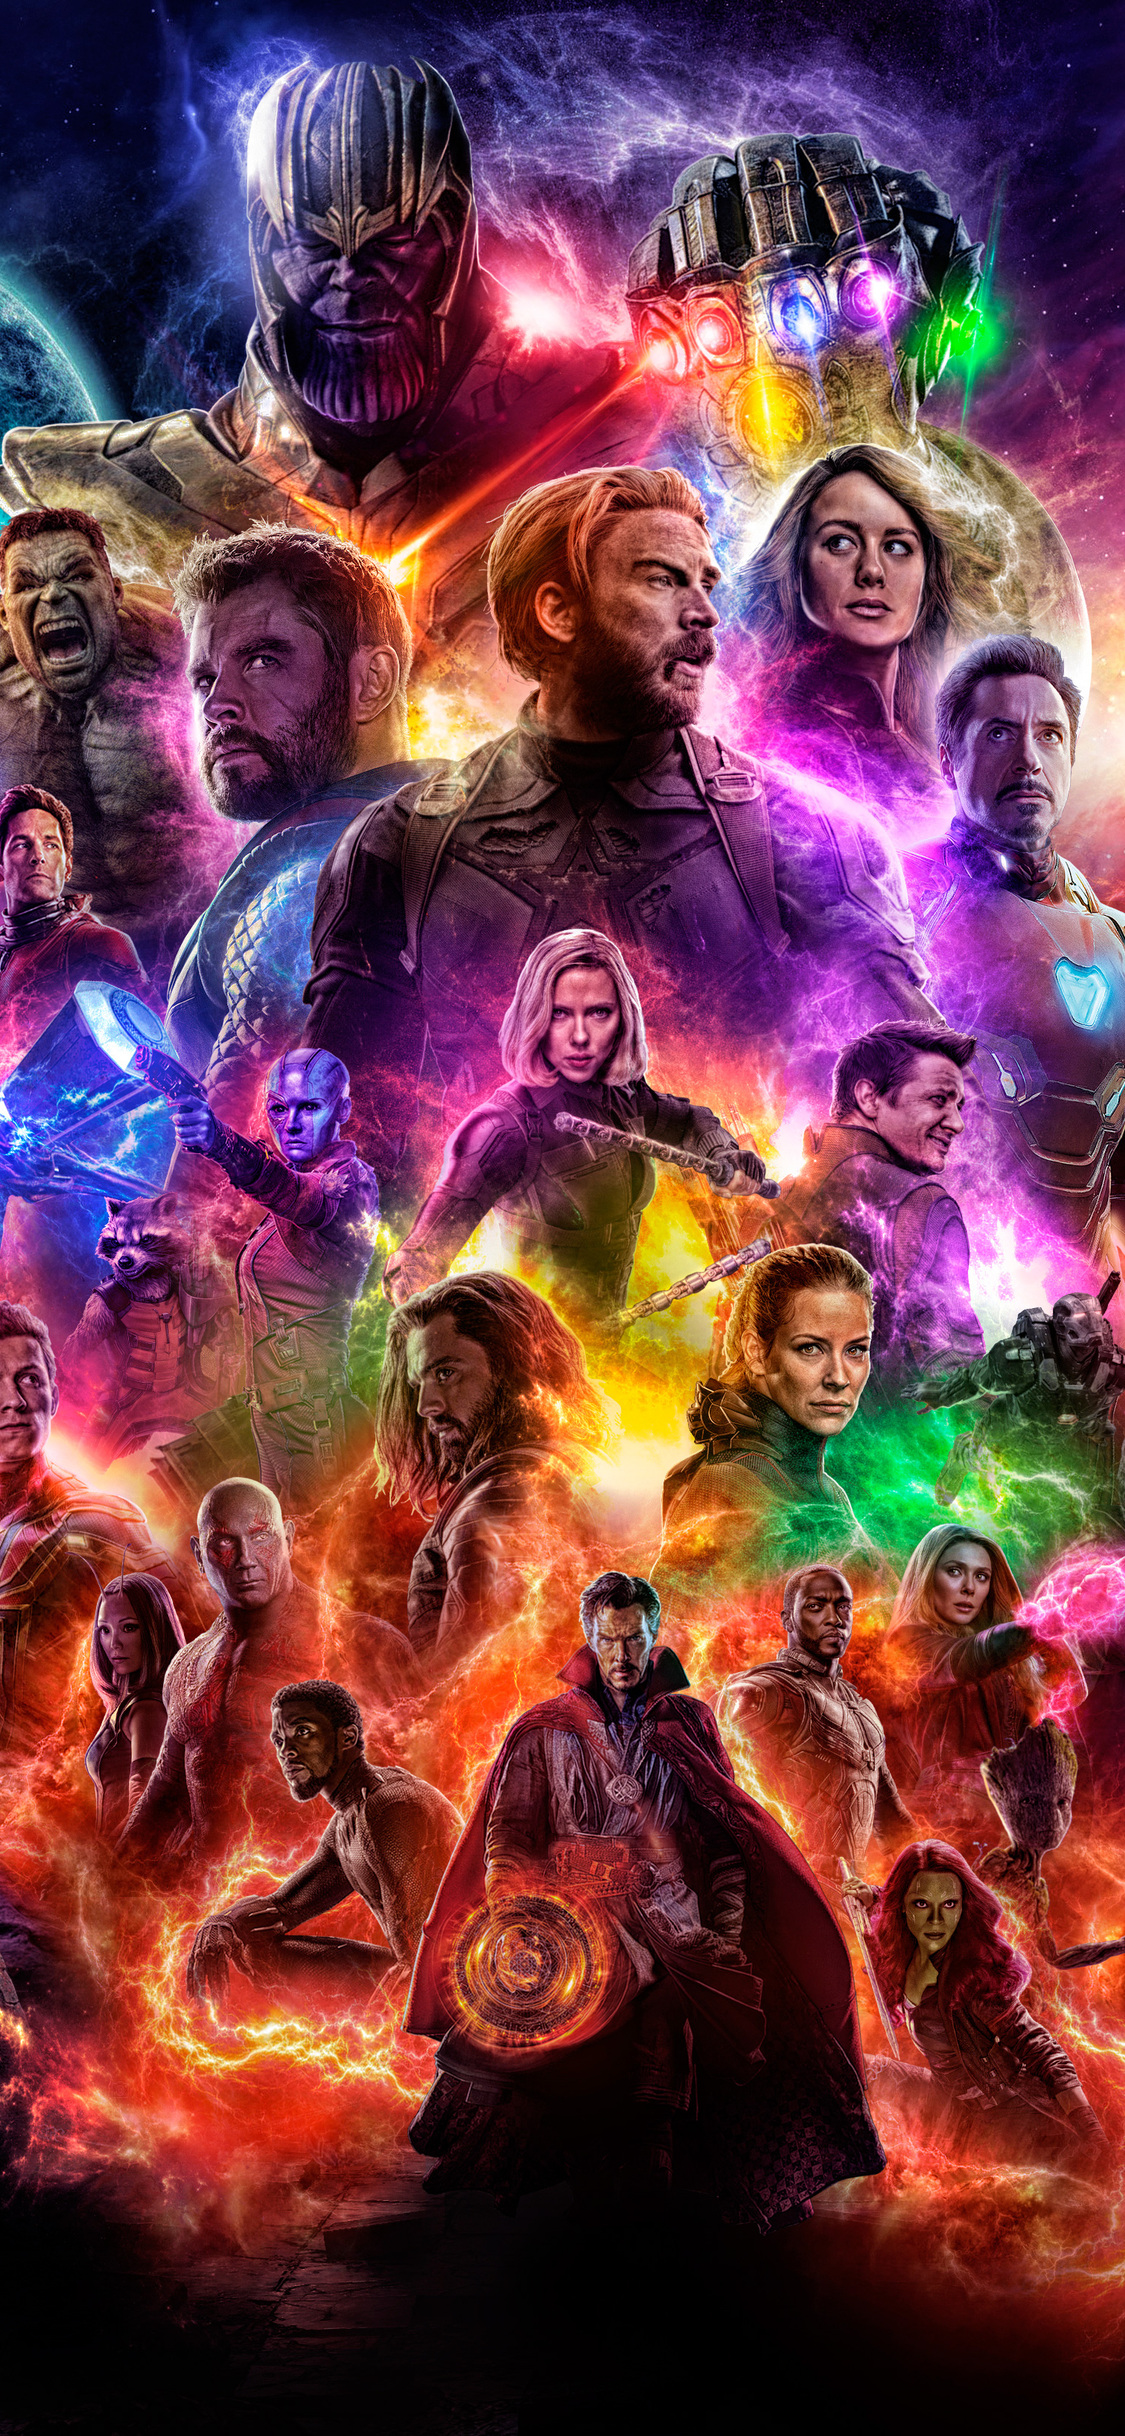 1125x2436 Avengers 4 End Game 2019 Iphone Xsiphone 10iphone X Hd